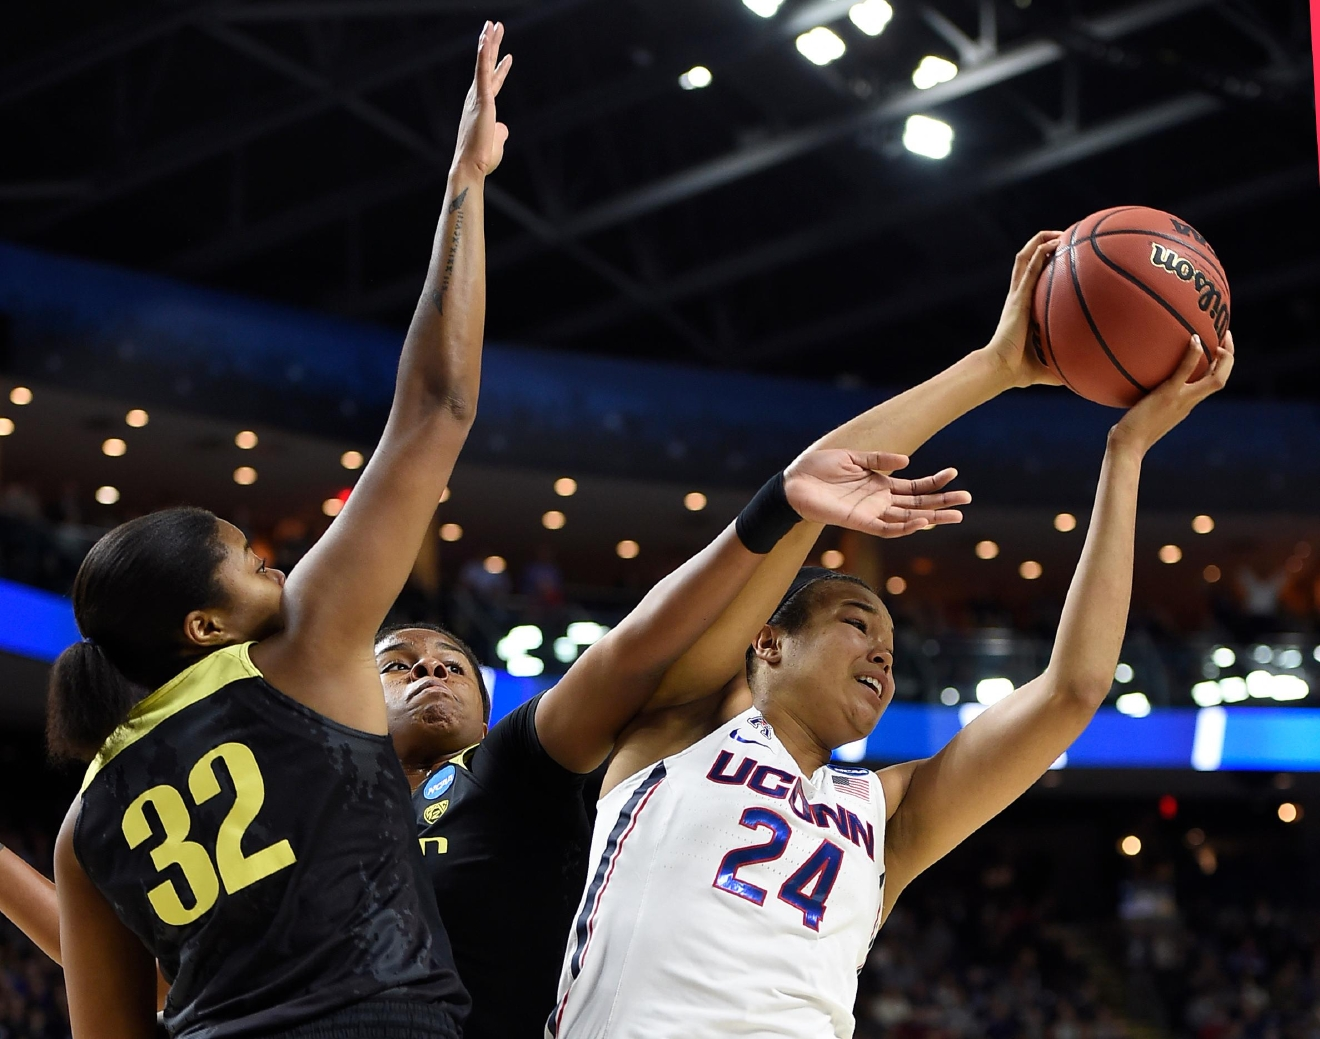 Oregon's Oti Gildon, left, and Oregon's Ruthy Hebard, center, defend against Connecticut's Napheesa Collier during the first half of a regional final game in the NCAA women's college basketball tournament, Monday, March 27, 2017, in Bridgeport, Conn. (AP Photo/Jessica Hill)